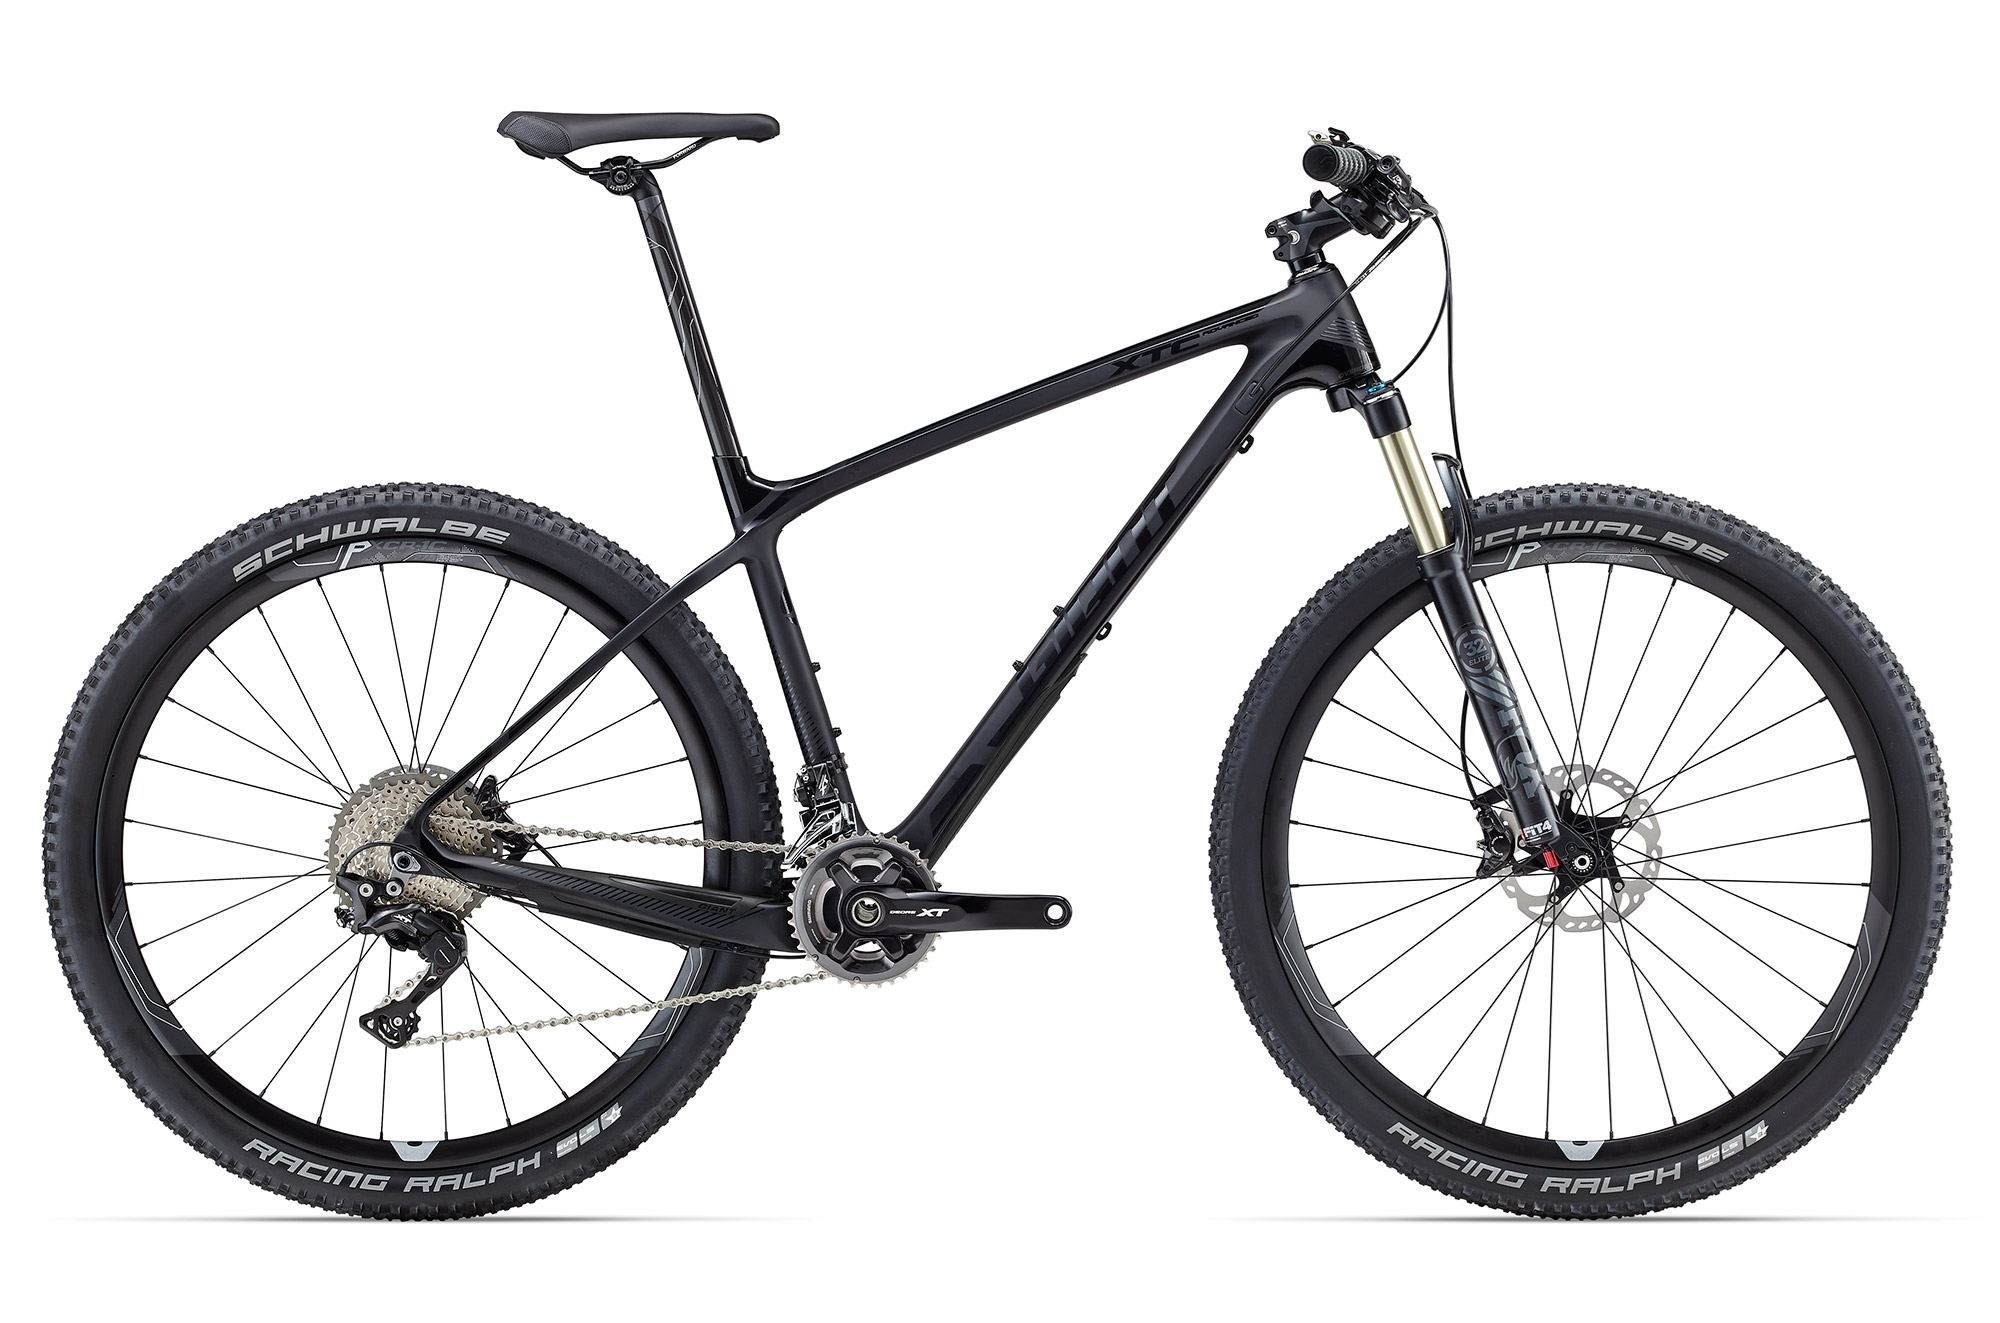 Велосипед Giant XtC Advanced 27.5 1 2016 велосипед giant trinity advanced pro 1 2016